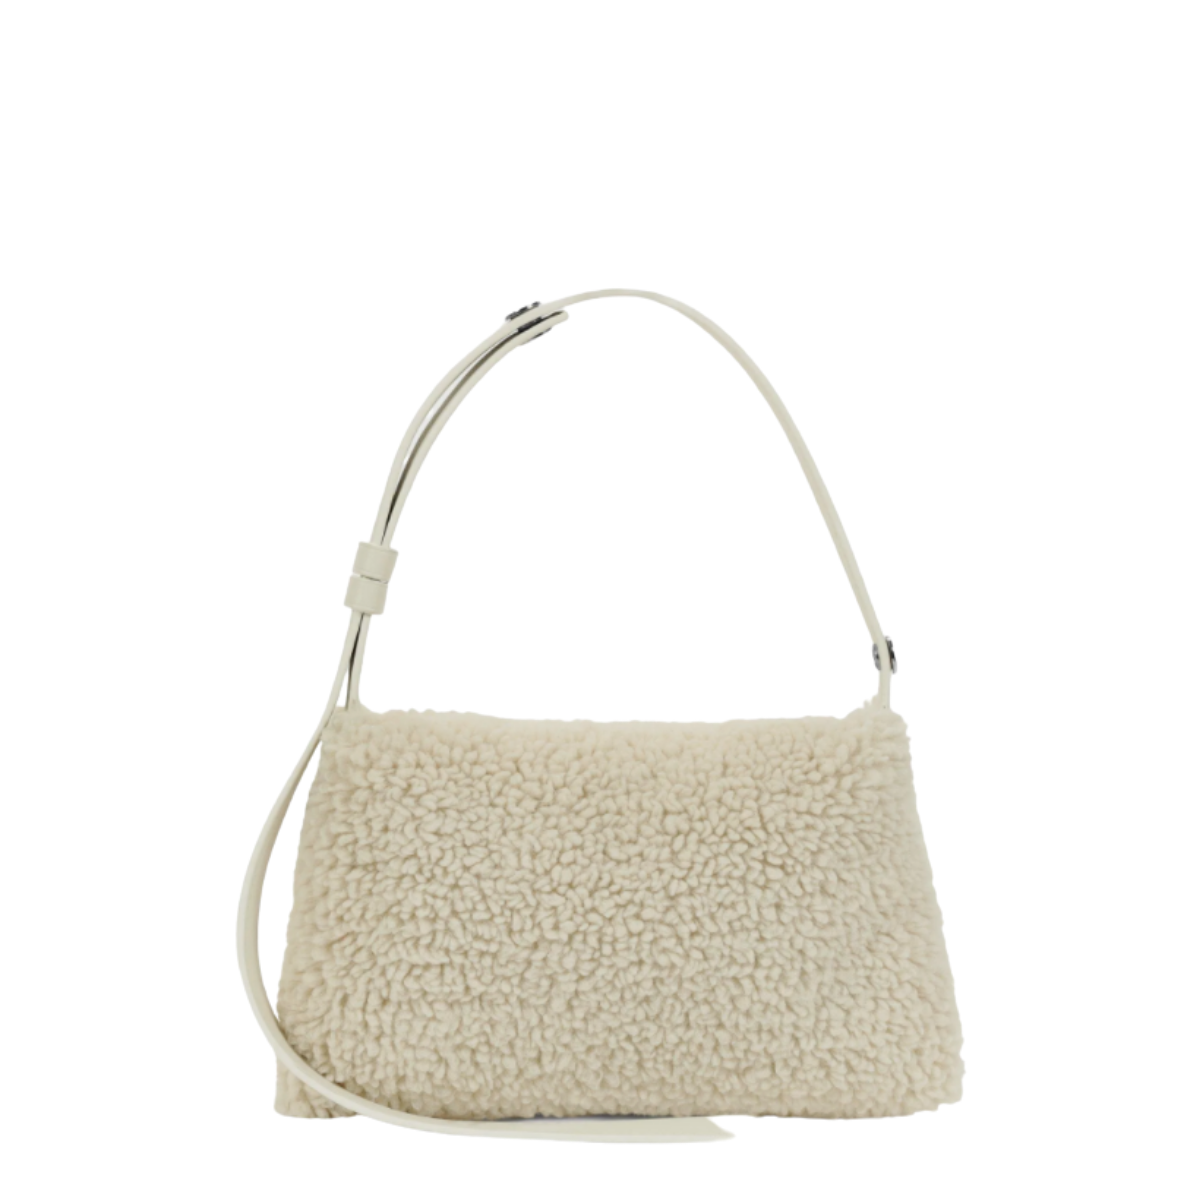 VERSATILE MINI PUFFIN BAG IN FAUX SHEARLING FEATURING A CONVERTIBLE STRAP AND MAGNETIC CLOSURE